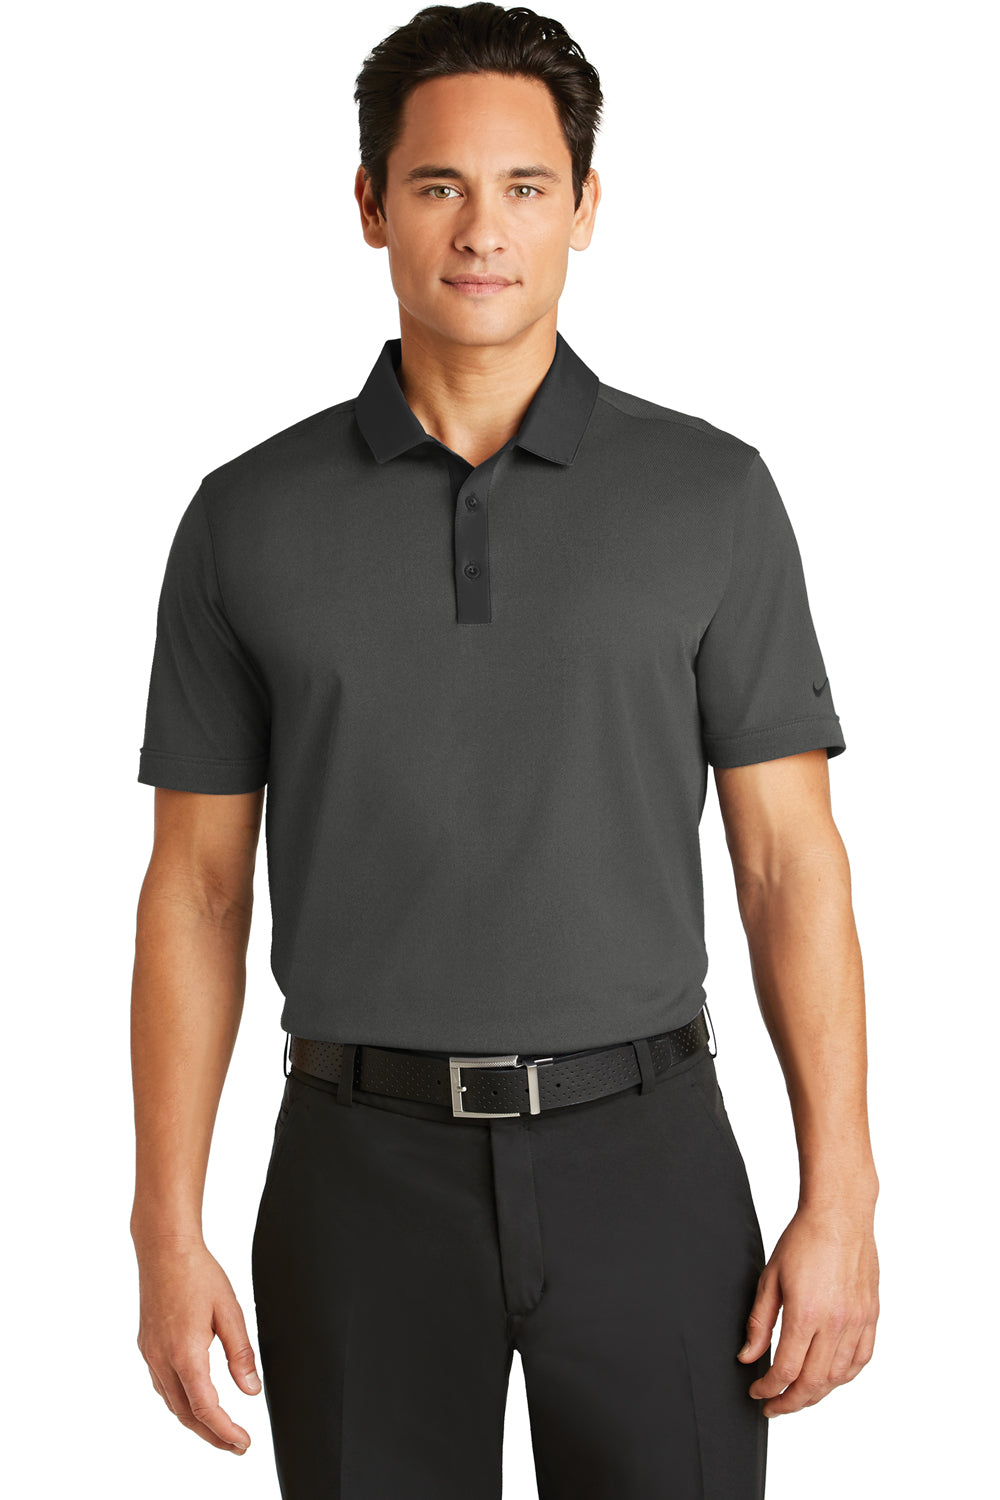 Nike 779798 Mens Dri-Fit Moisture Wicking Short Sleeve Polo Shirt Heather Black Front